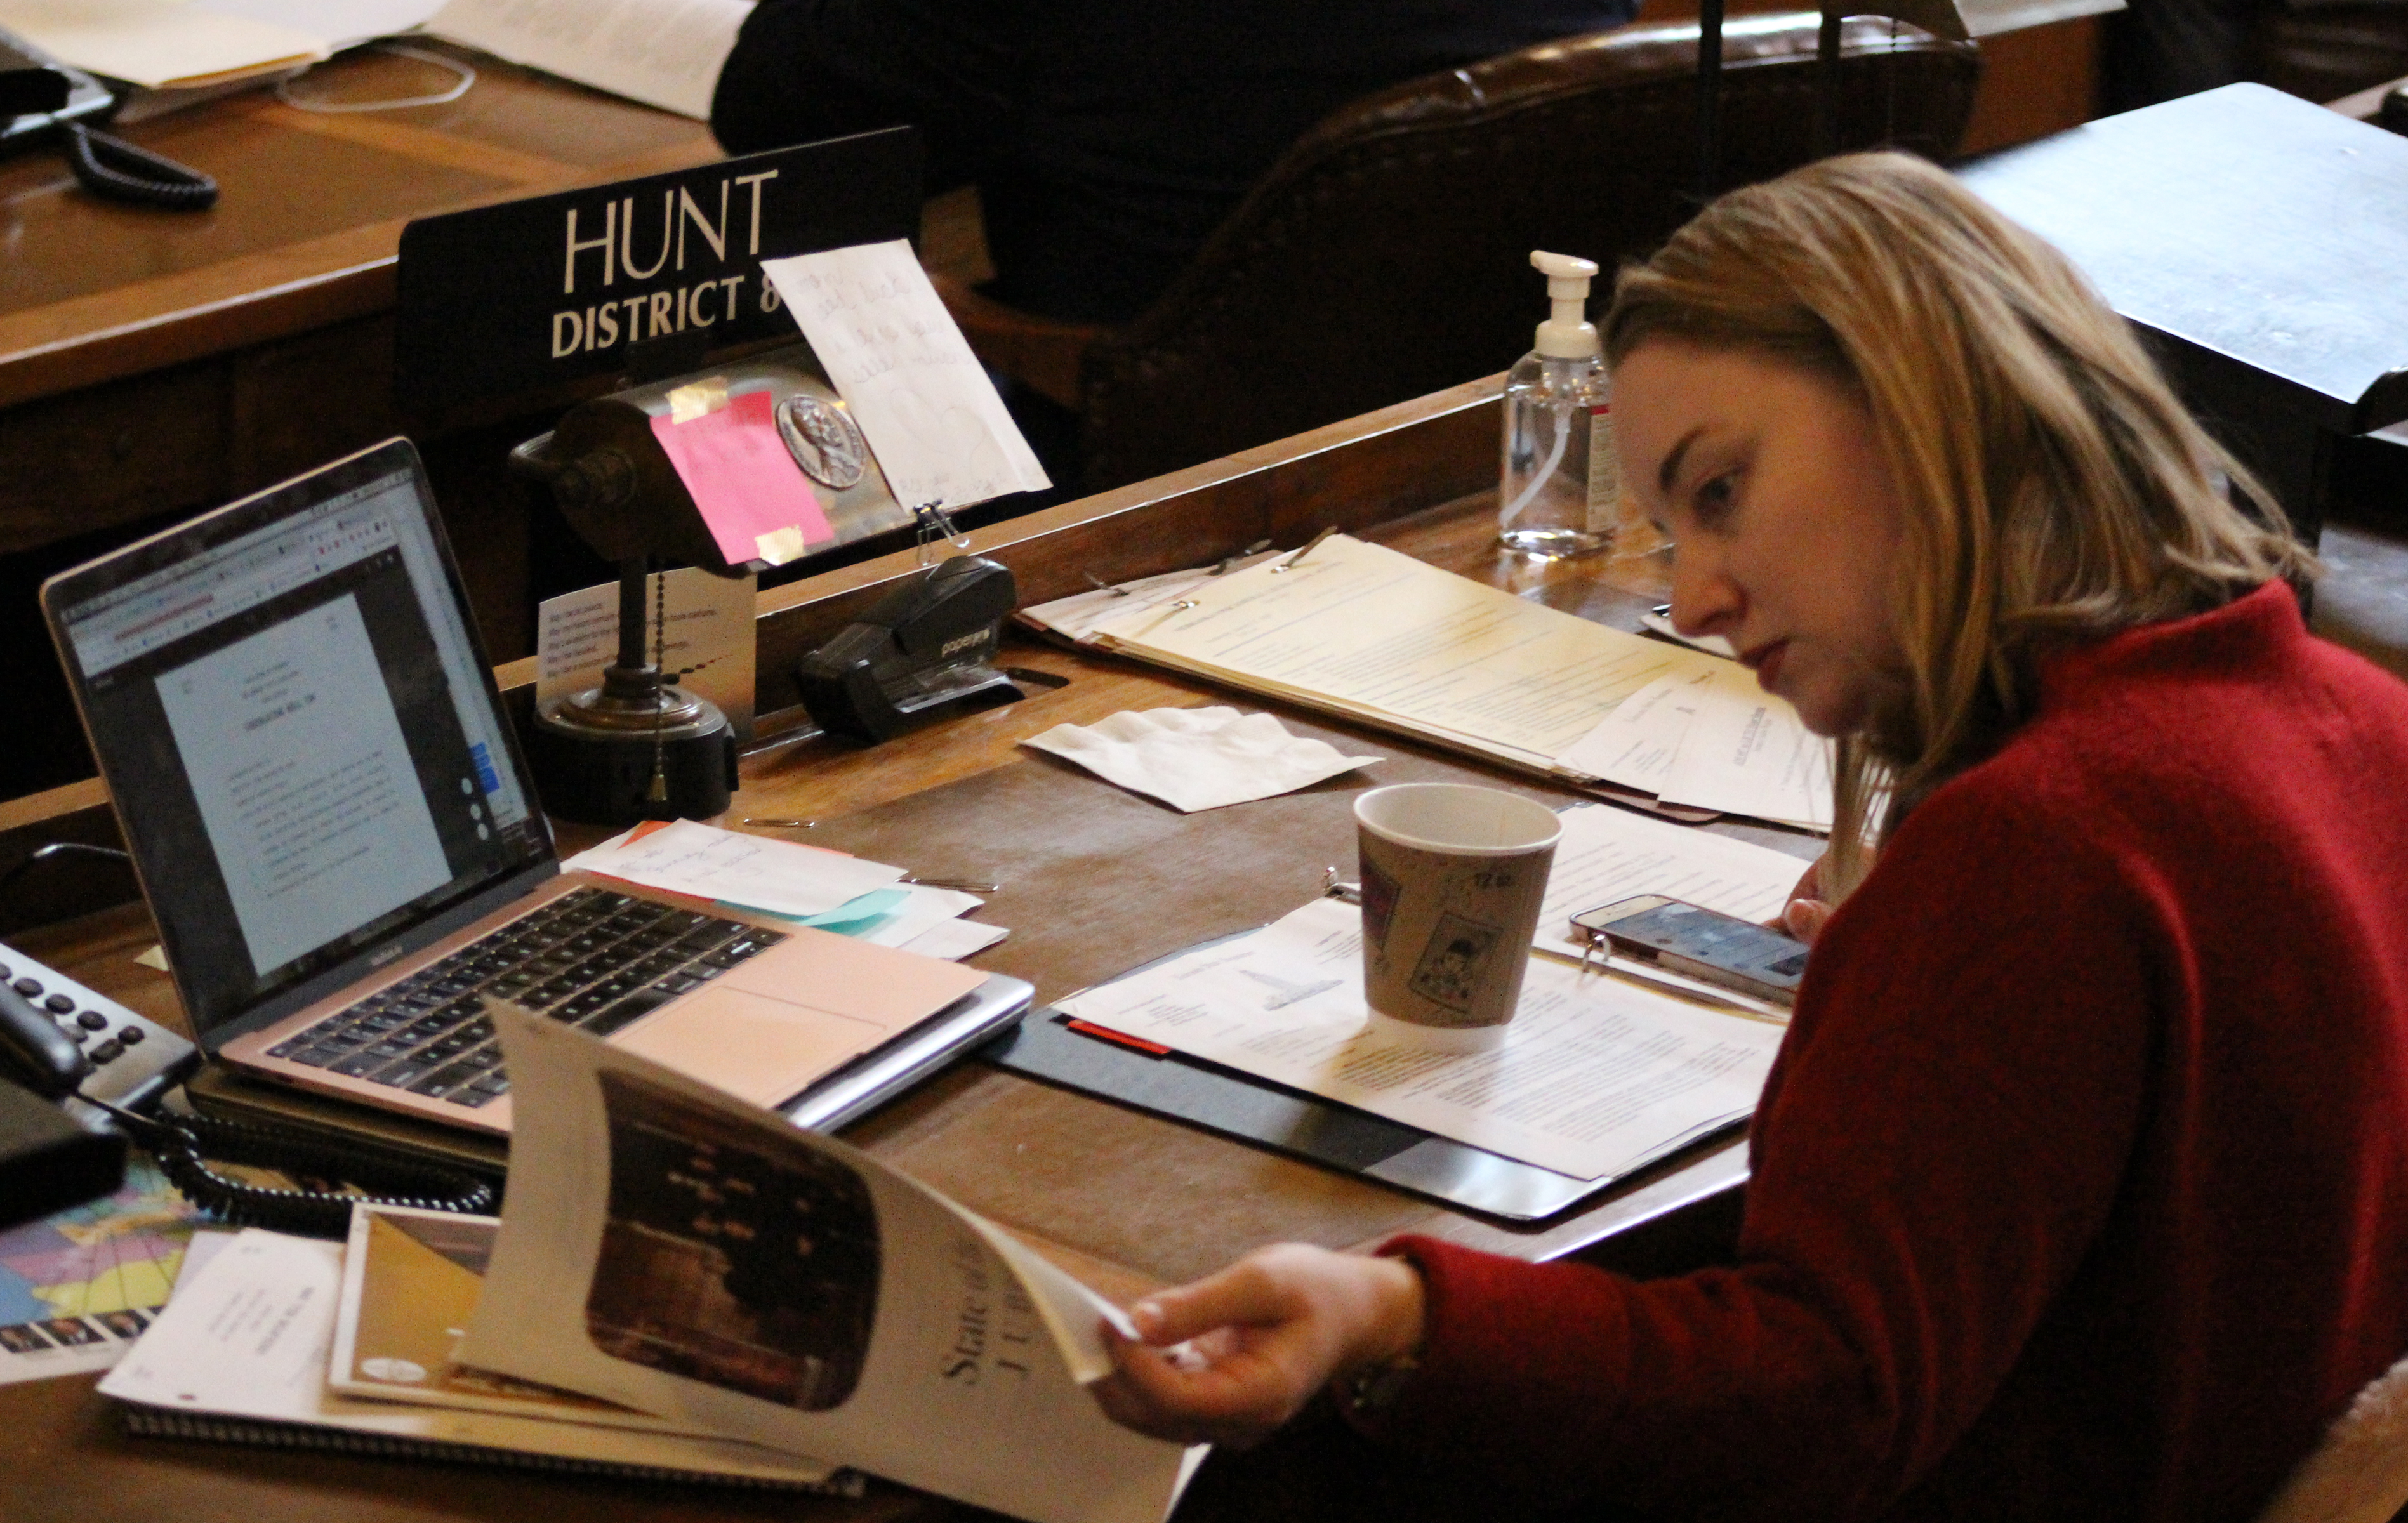 State Sen. Megan Hunt of Omaha looks at a copy of the State of the Judiciary address at the Nebraska Legislature on Wednesday, Jan. 22, 2020. (Photo by Scott Stewart)